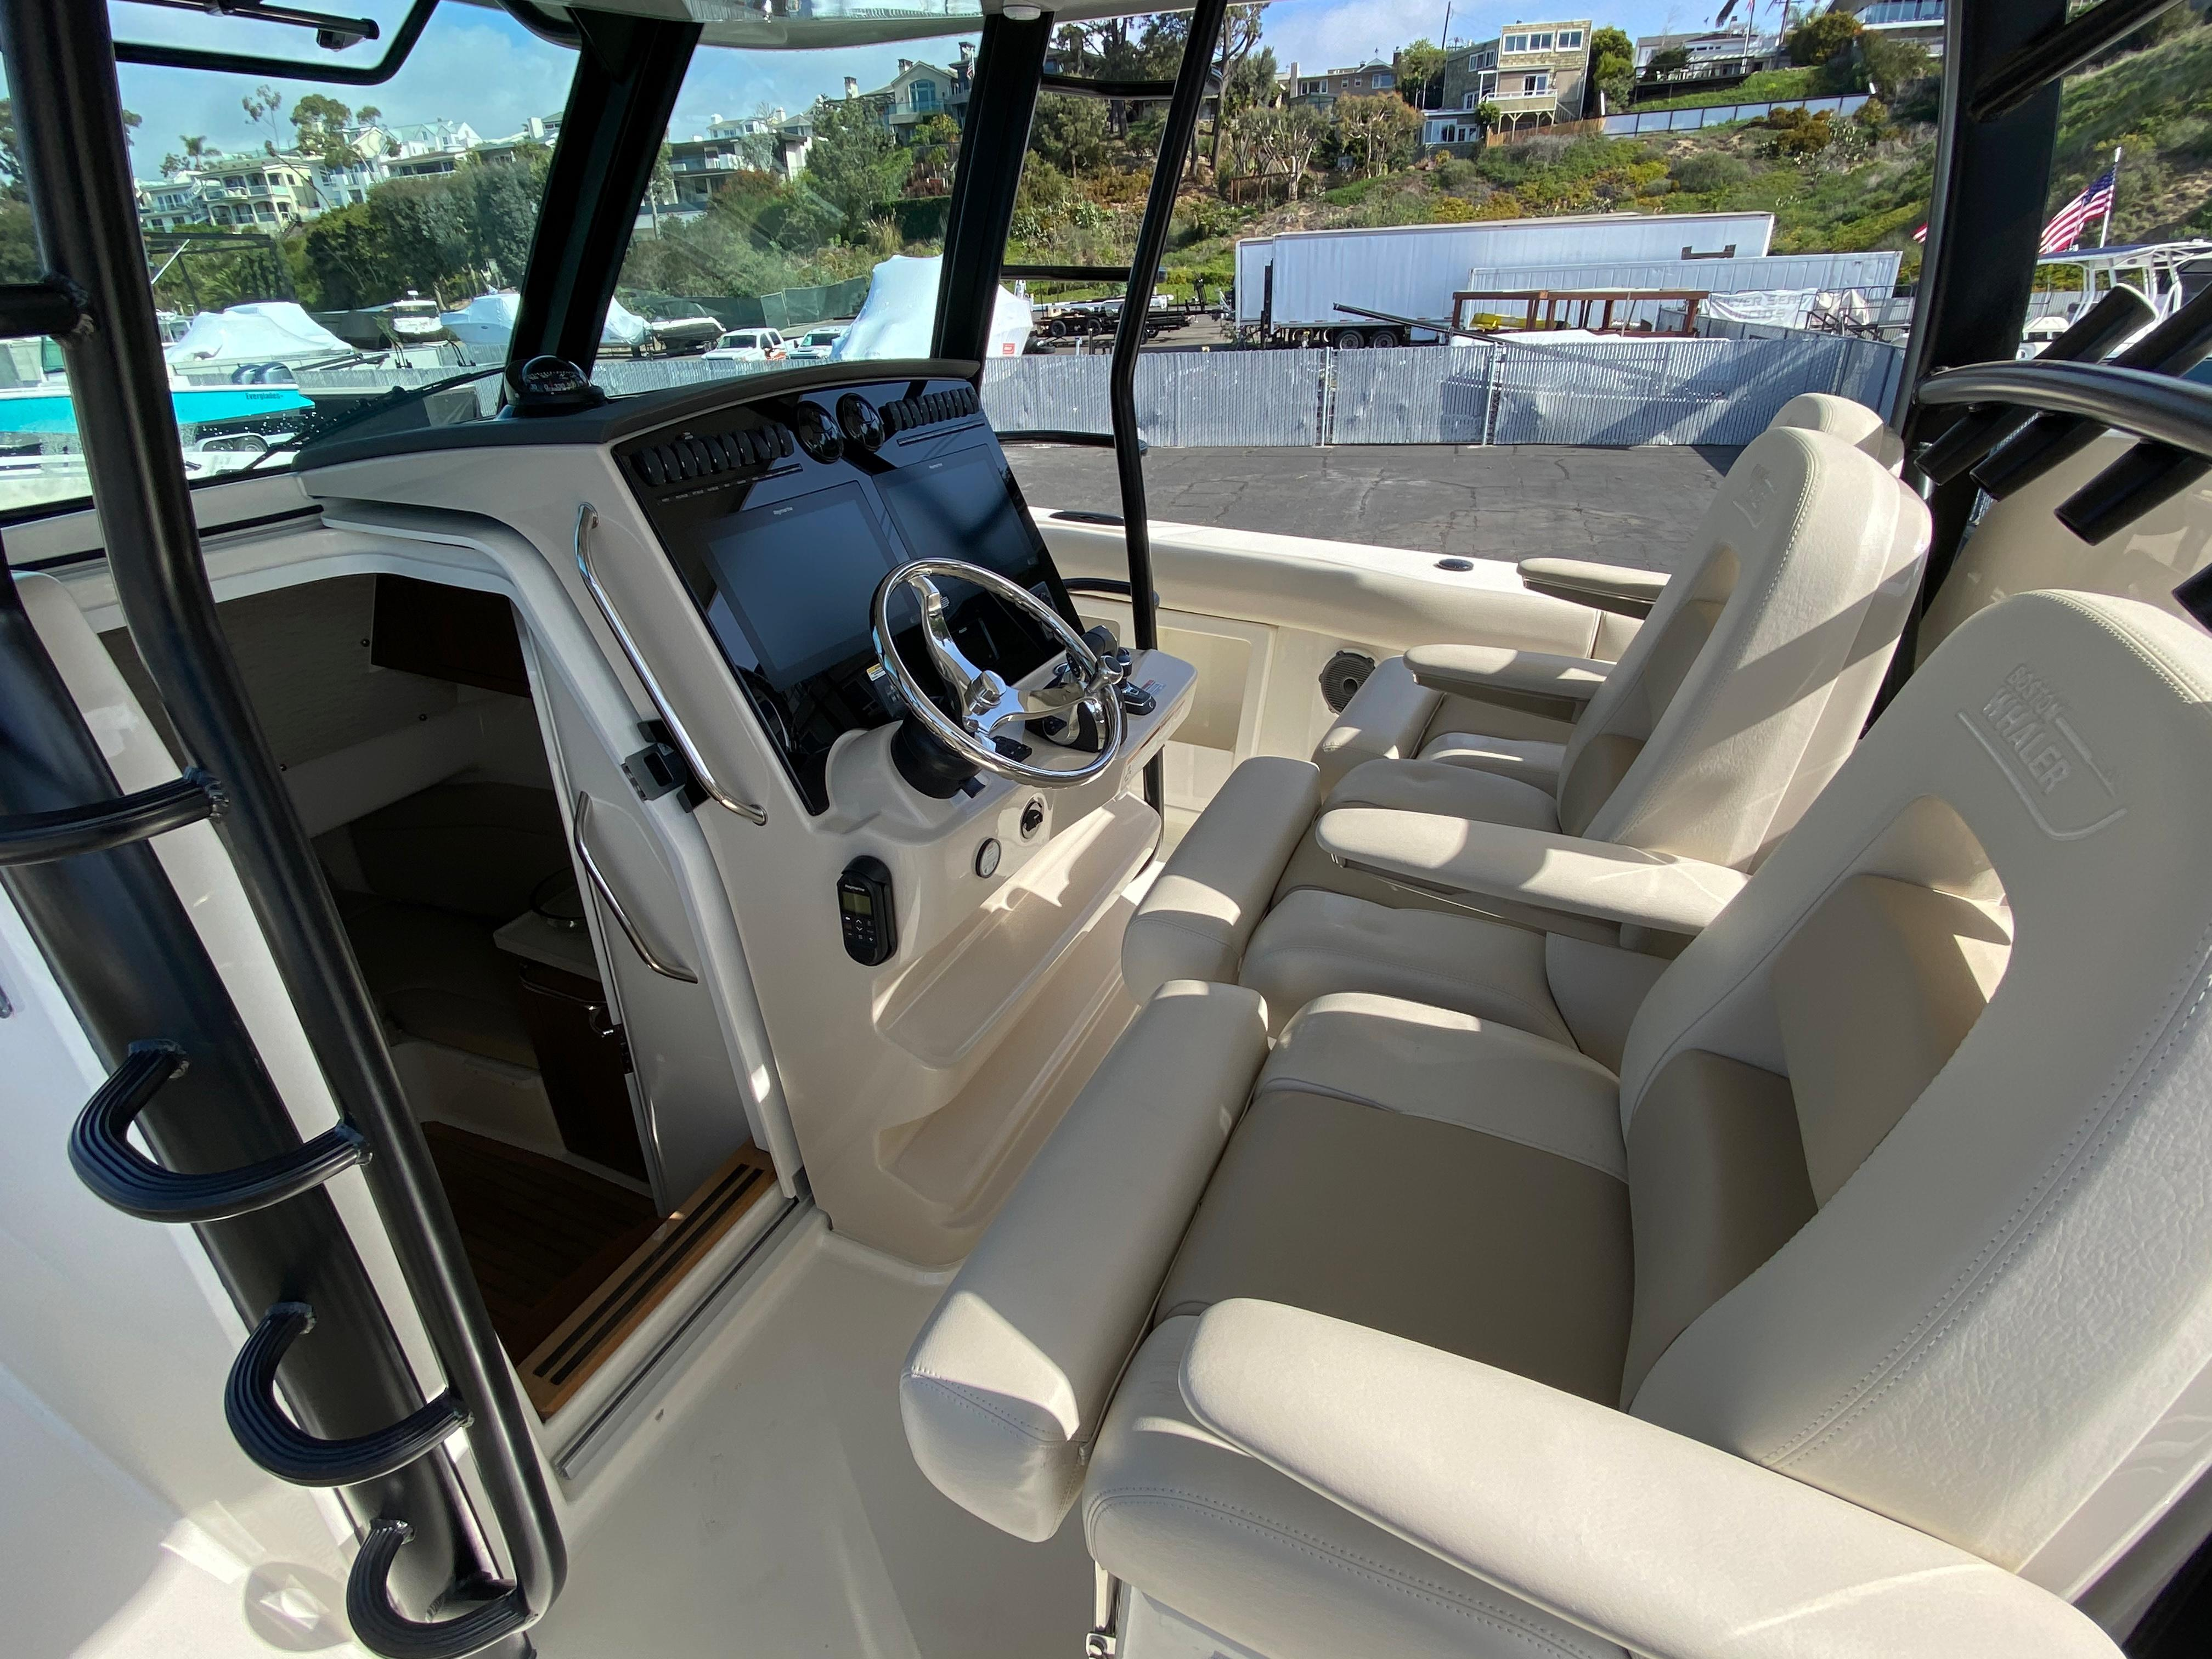 2021 Boston Whaler 380 Outrage #BW0552G inventory image at Sun Country Coastal in Newport Beach